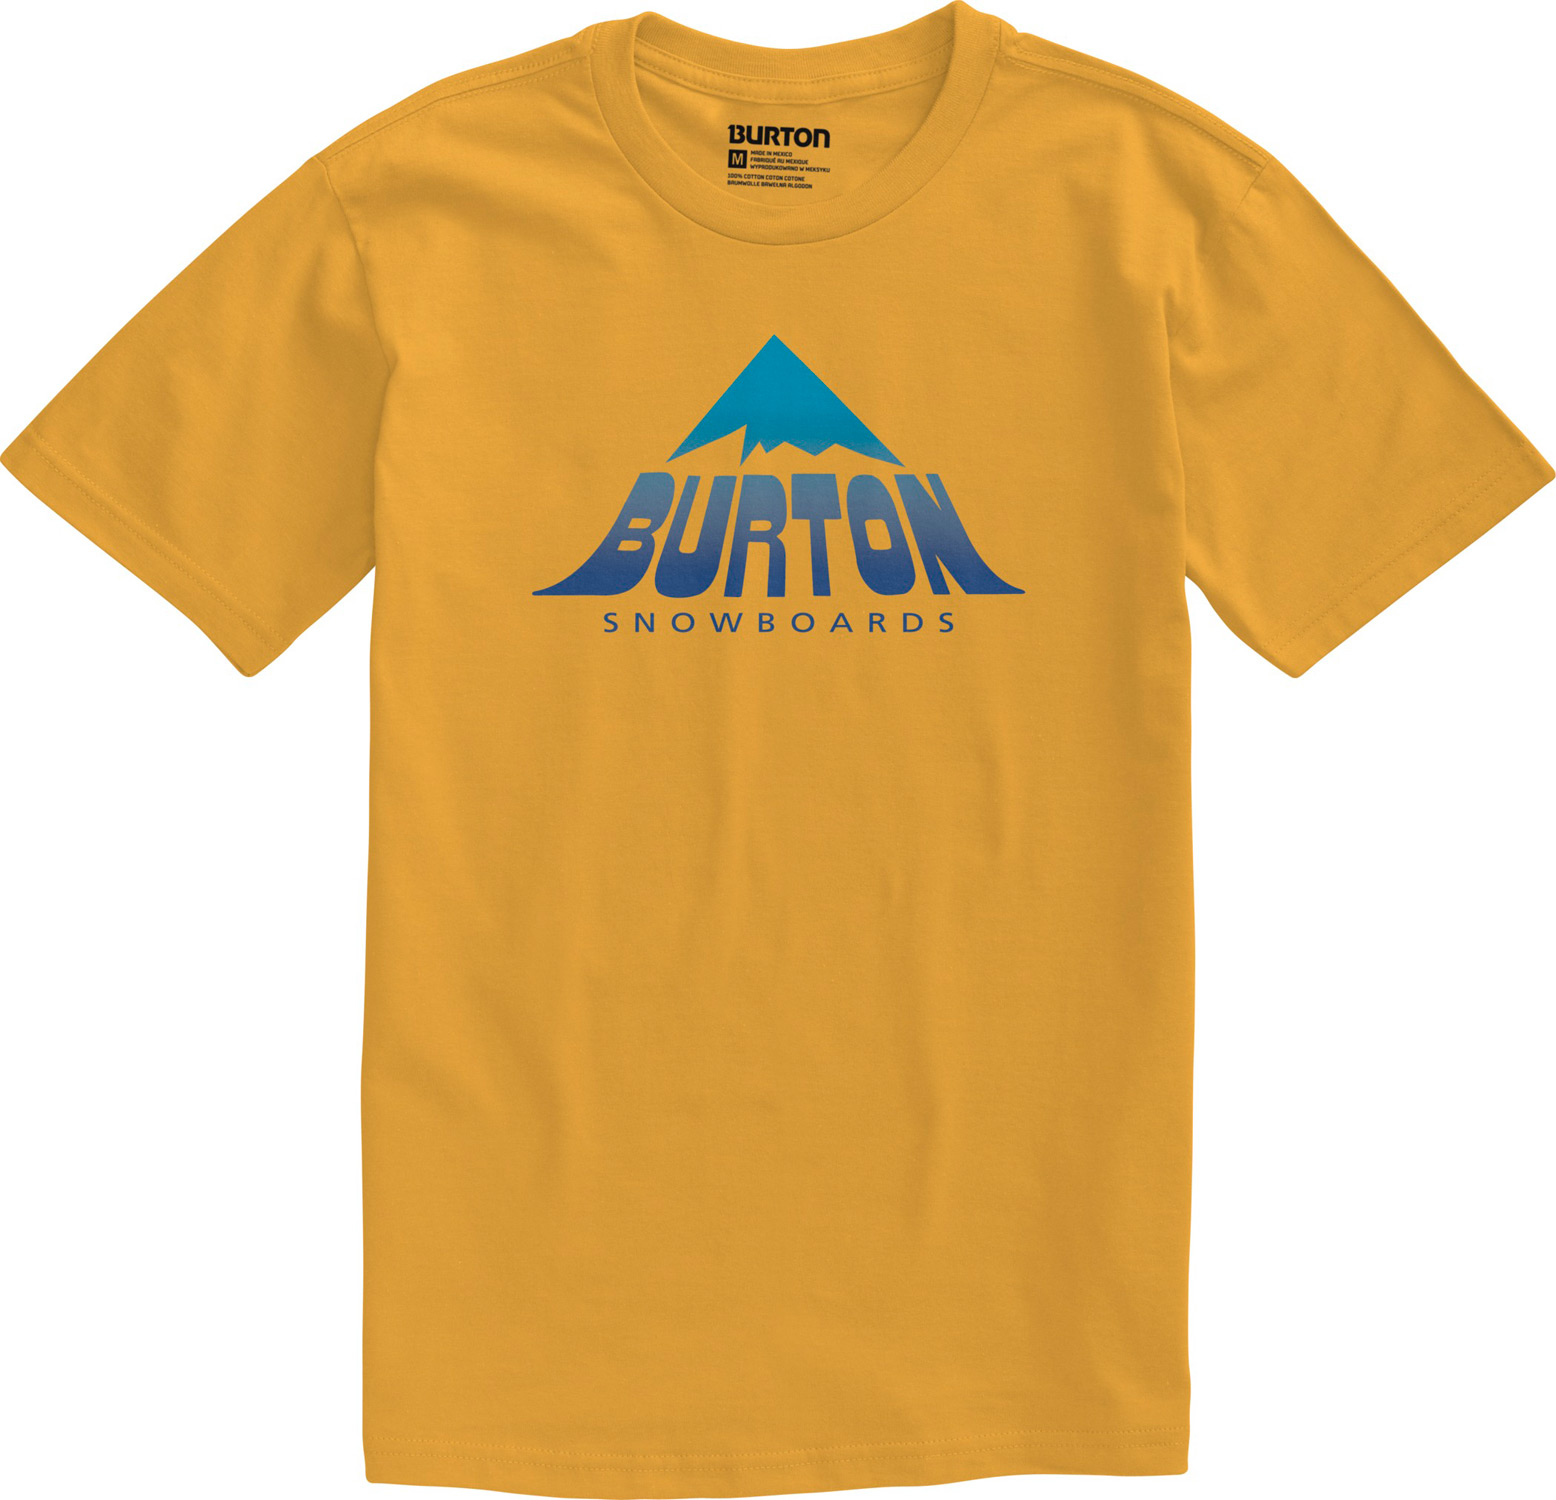 Snowboard Key Features of the Burton Caveat T-Shirt: 90% Cotton, 10% Polyester [Heather Gray] 50% Cotton, 50% Polyester [Heather True Black] 100% Cotton [All Other Colorways] Screen Print on Front Regular Fit - $21.00